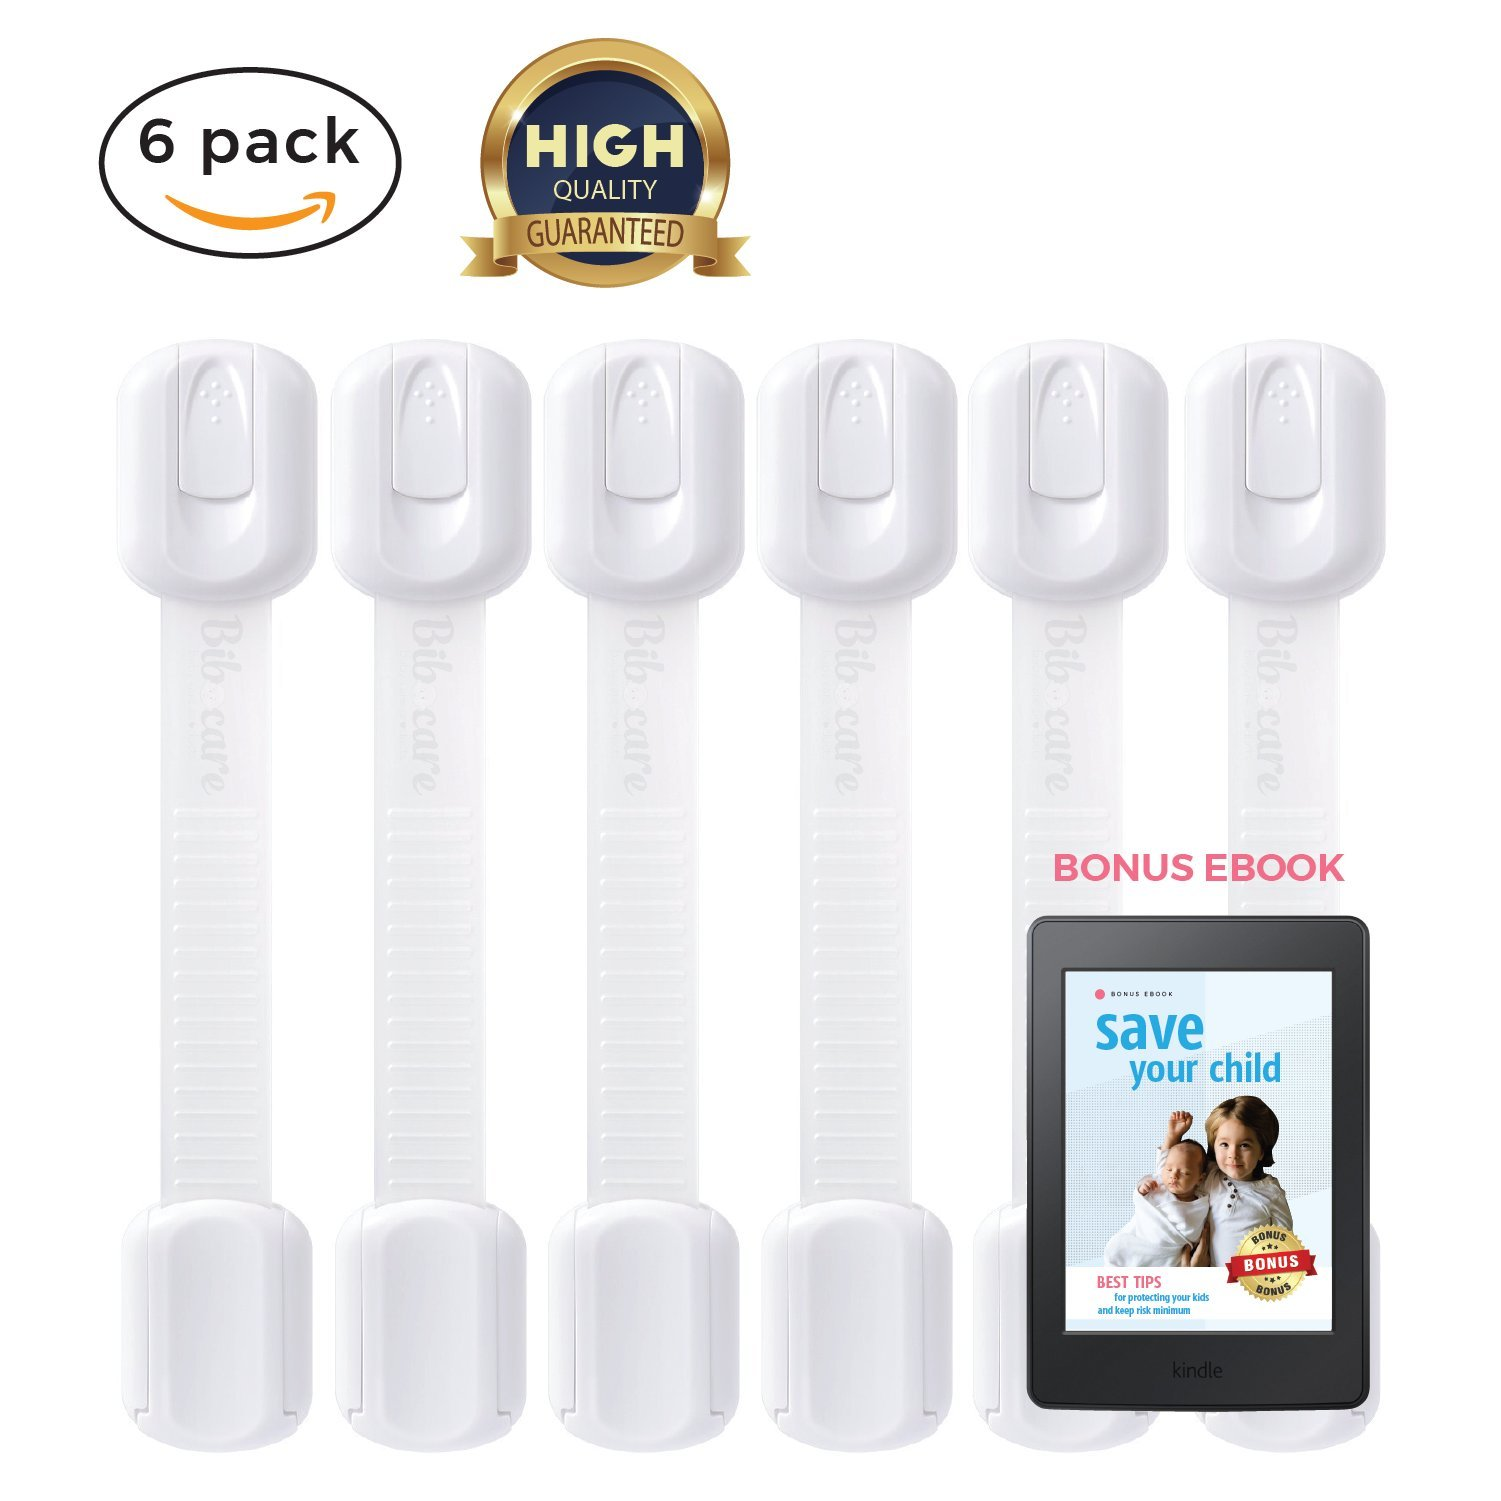 Child Proof Cabinet Locks | Baby Proof Door Lock, Toilet Seat, Window, Cupboard, Fridge, Oven | Easy Install, Open | Durable 3M Adhesive with Adjustable Strap and Latches | 6-Pack White